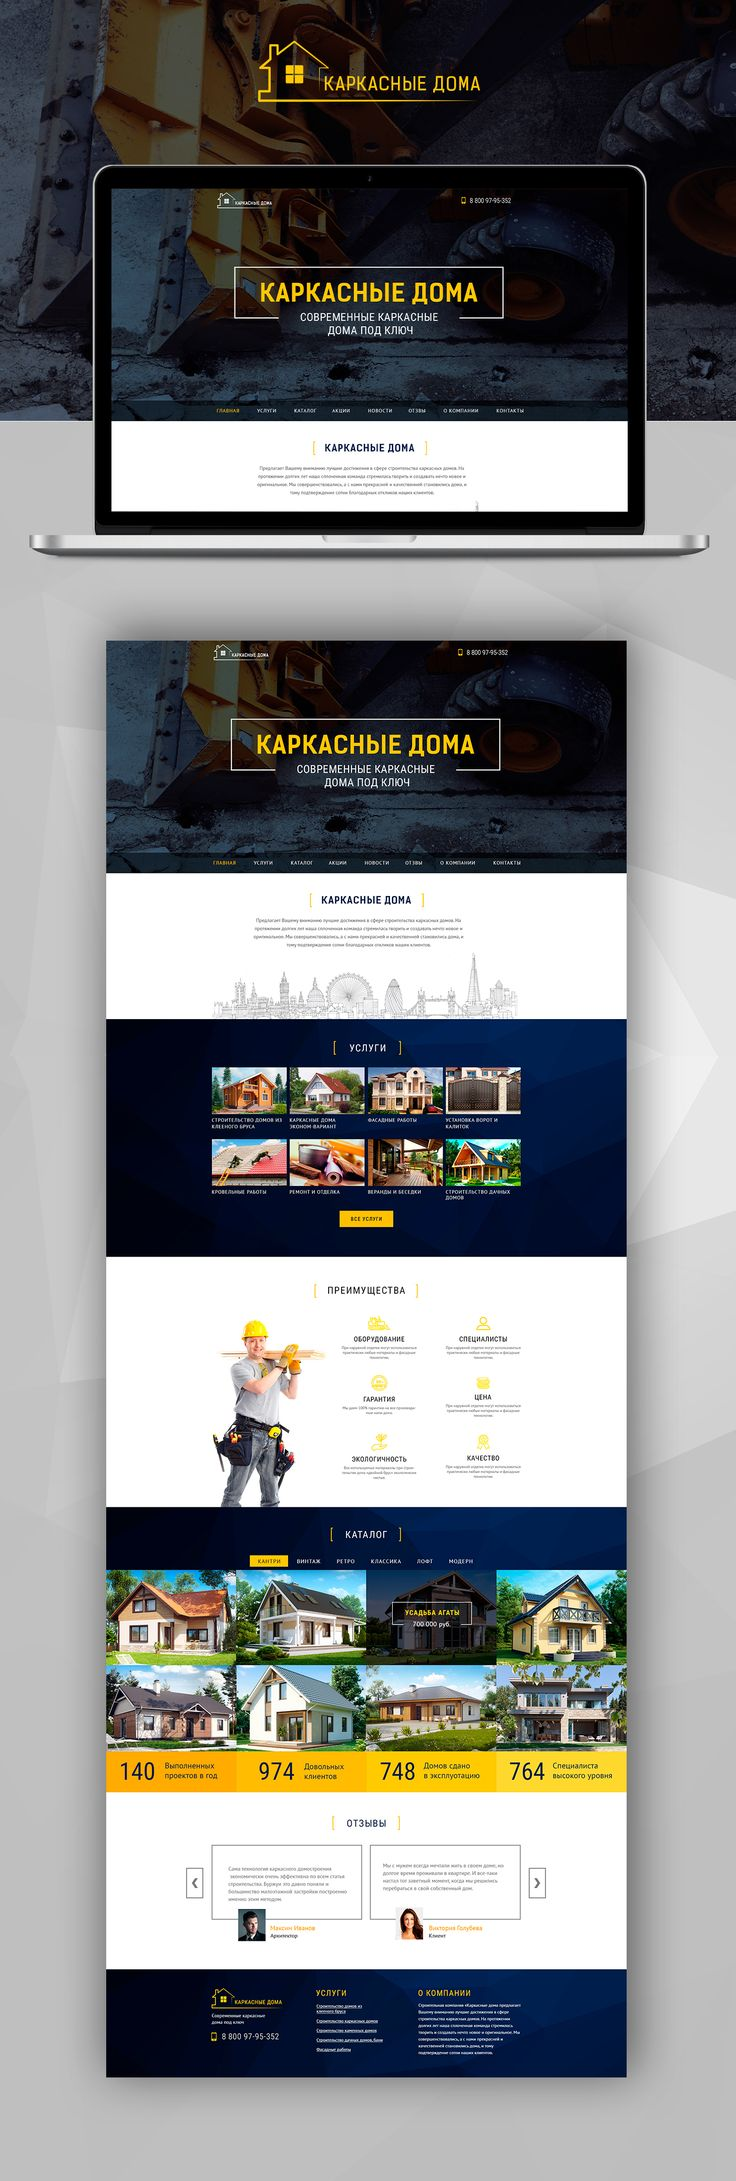 Web Design for Frame house